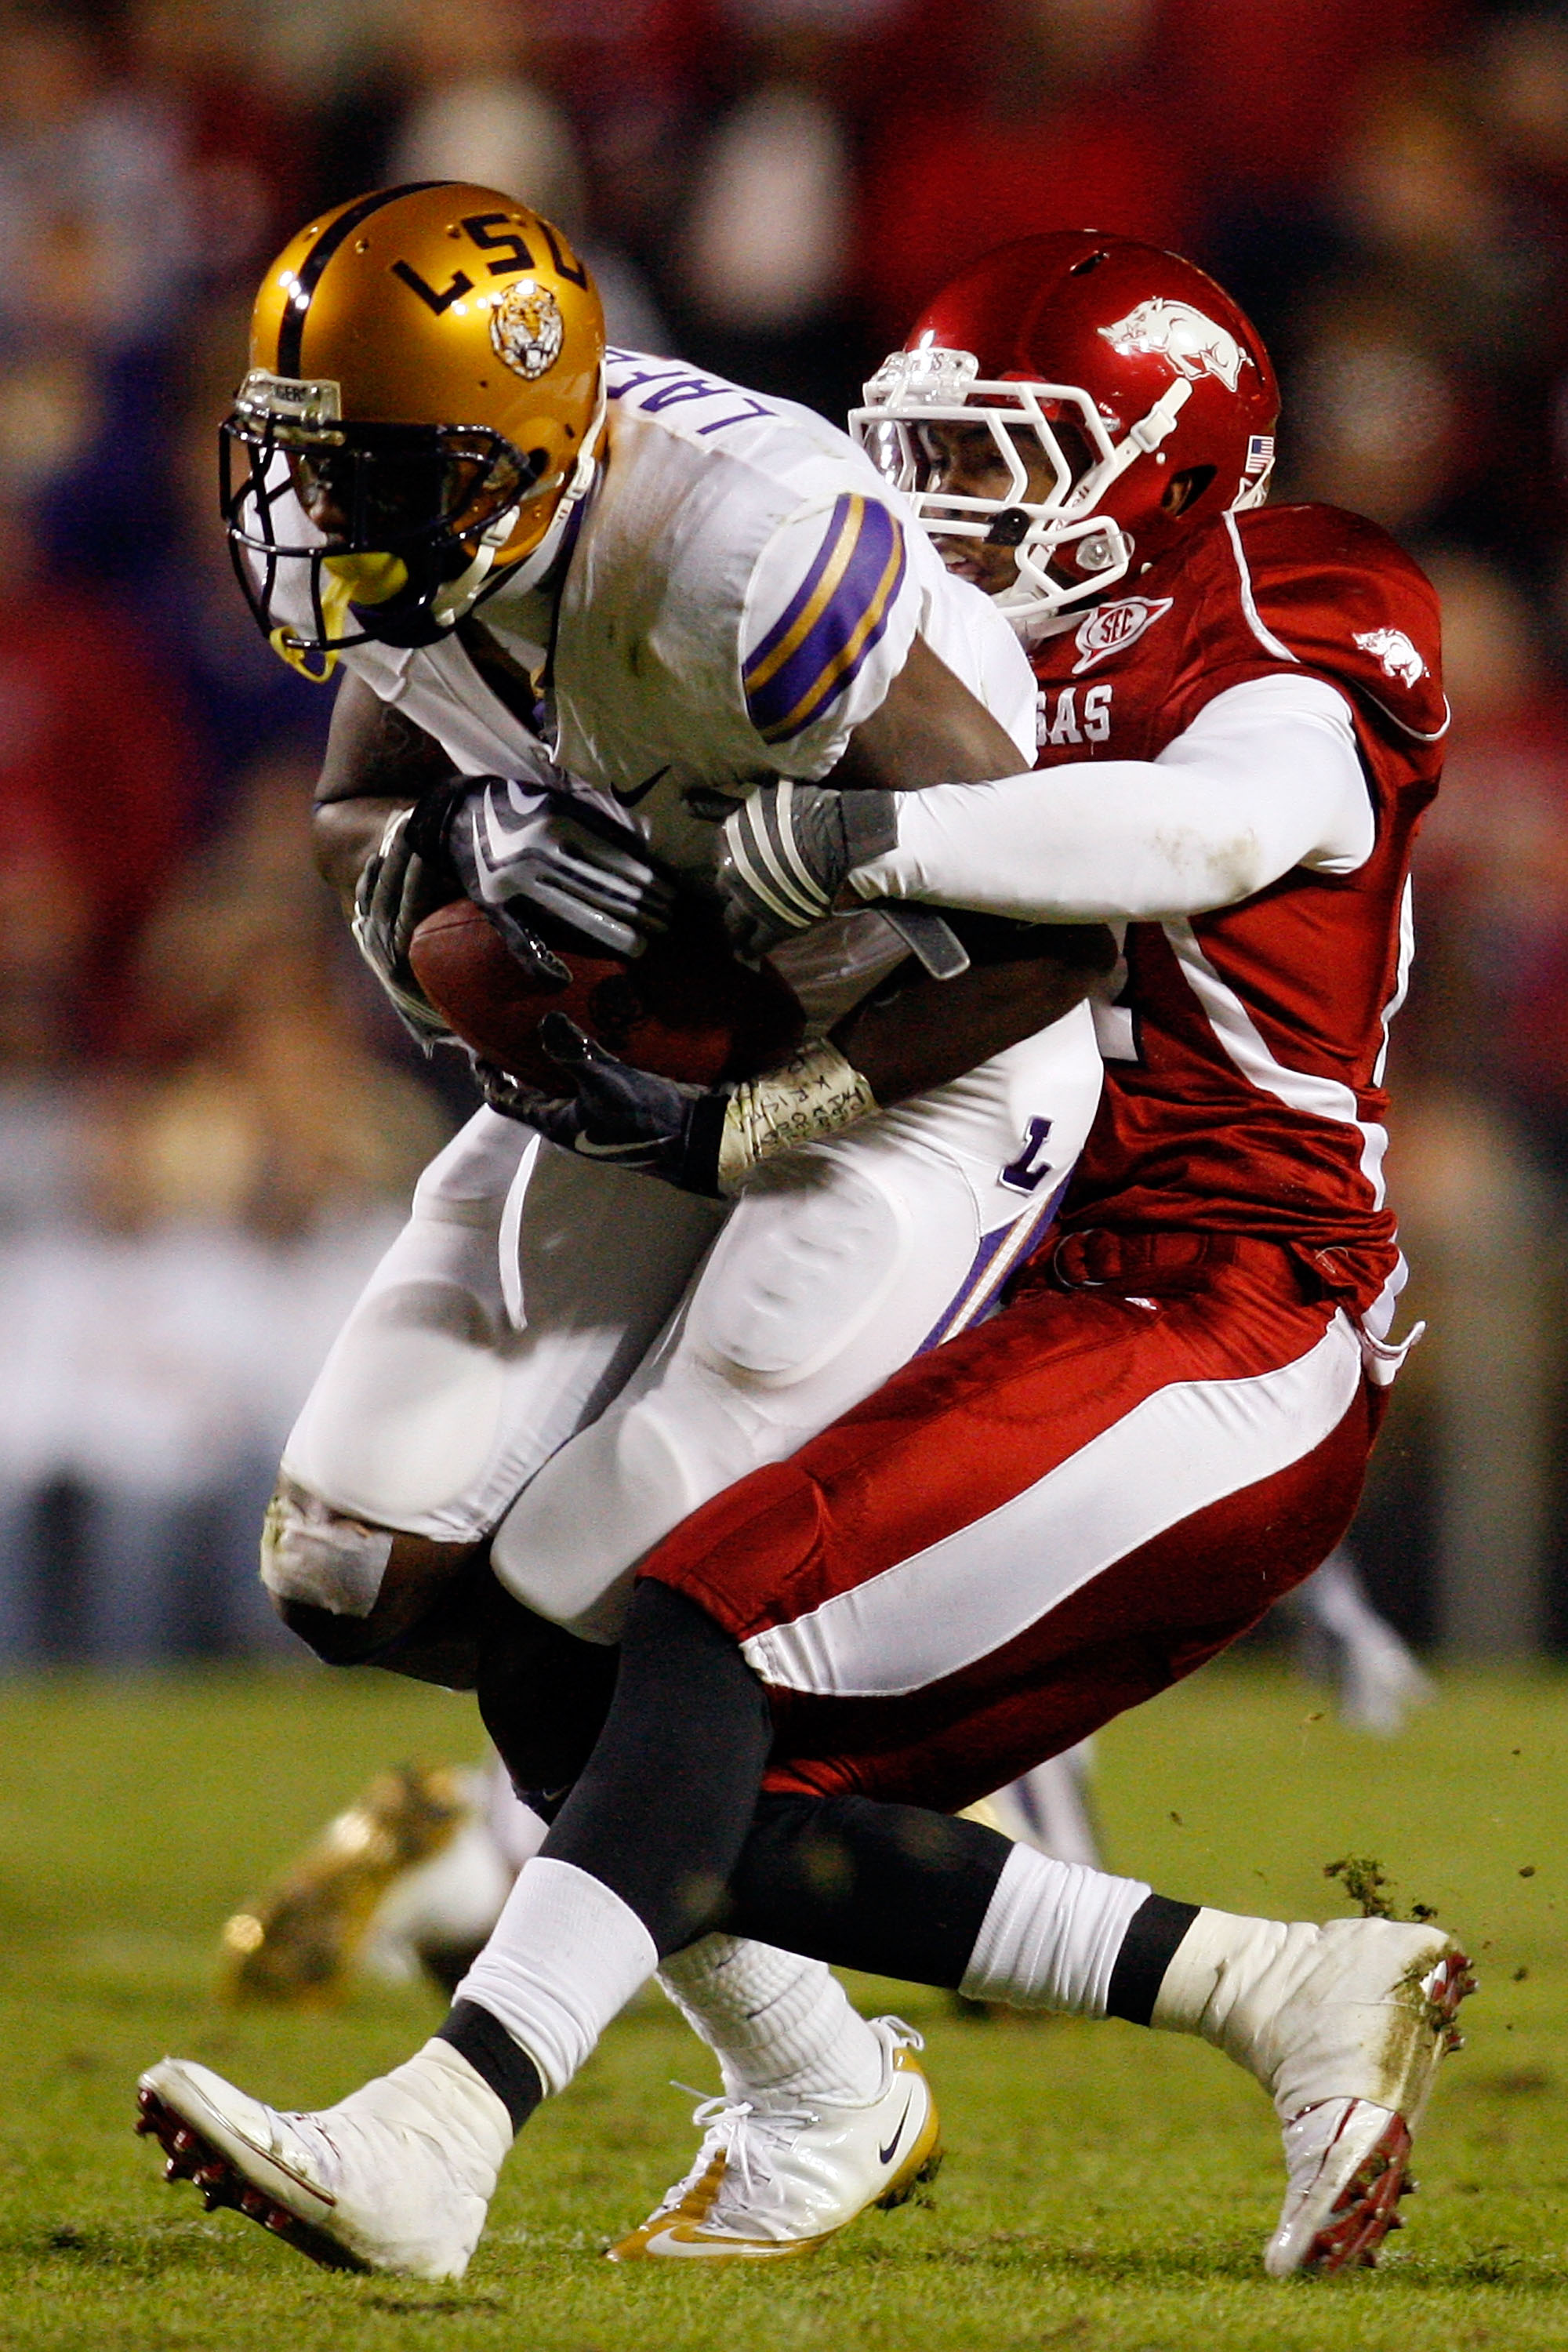 BATON ROUGE, LA - NOVEMBER 28:  Brandon LaFell #1 of the LSU Tigers is tackled by Jerell Norton #27 of the Arkansa Razorbacks at Tiger Stadium on November 28, 2009 in Baton Rouge, Louisiana.  The Tigers defeated the Razorbacks 33-30 in overtime.  (Photo b